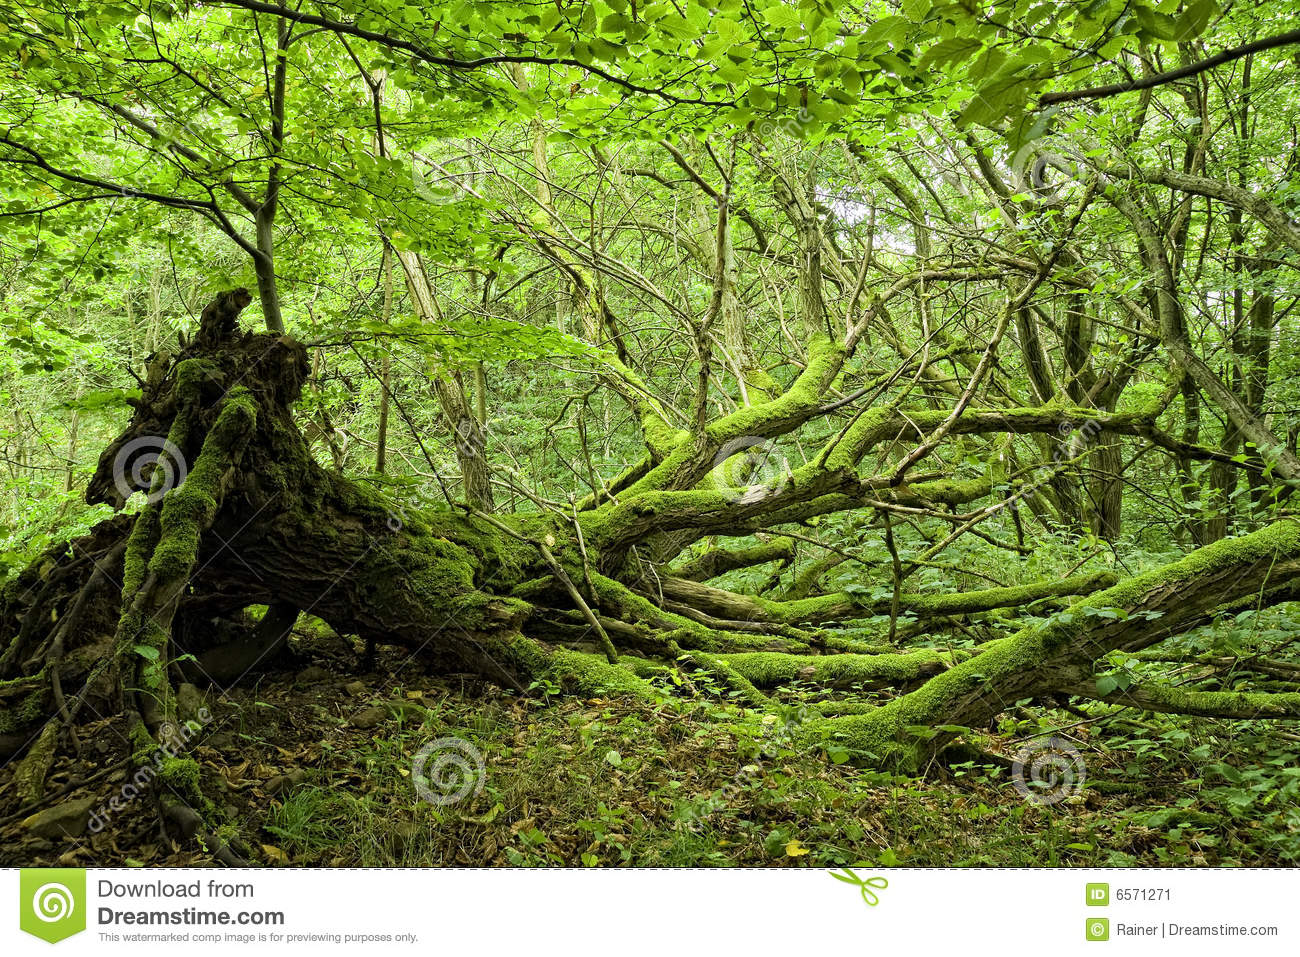 Moss covered trees in forest stock image image of for What is a tree trunk covered with 4 letters